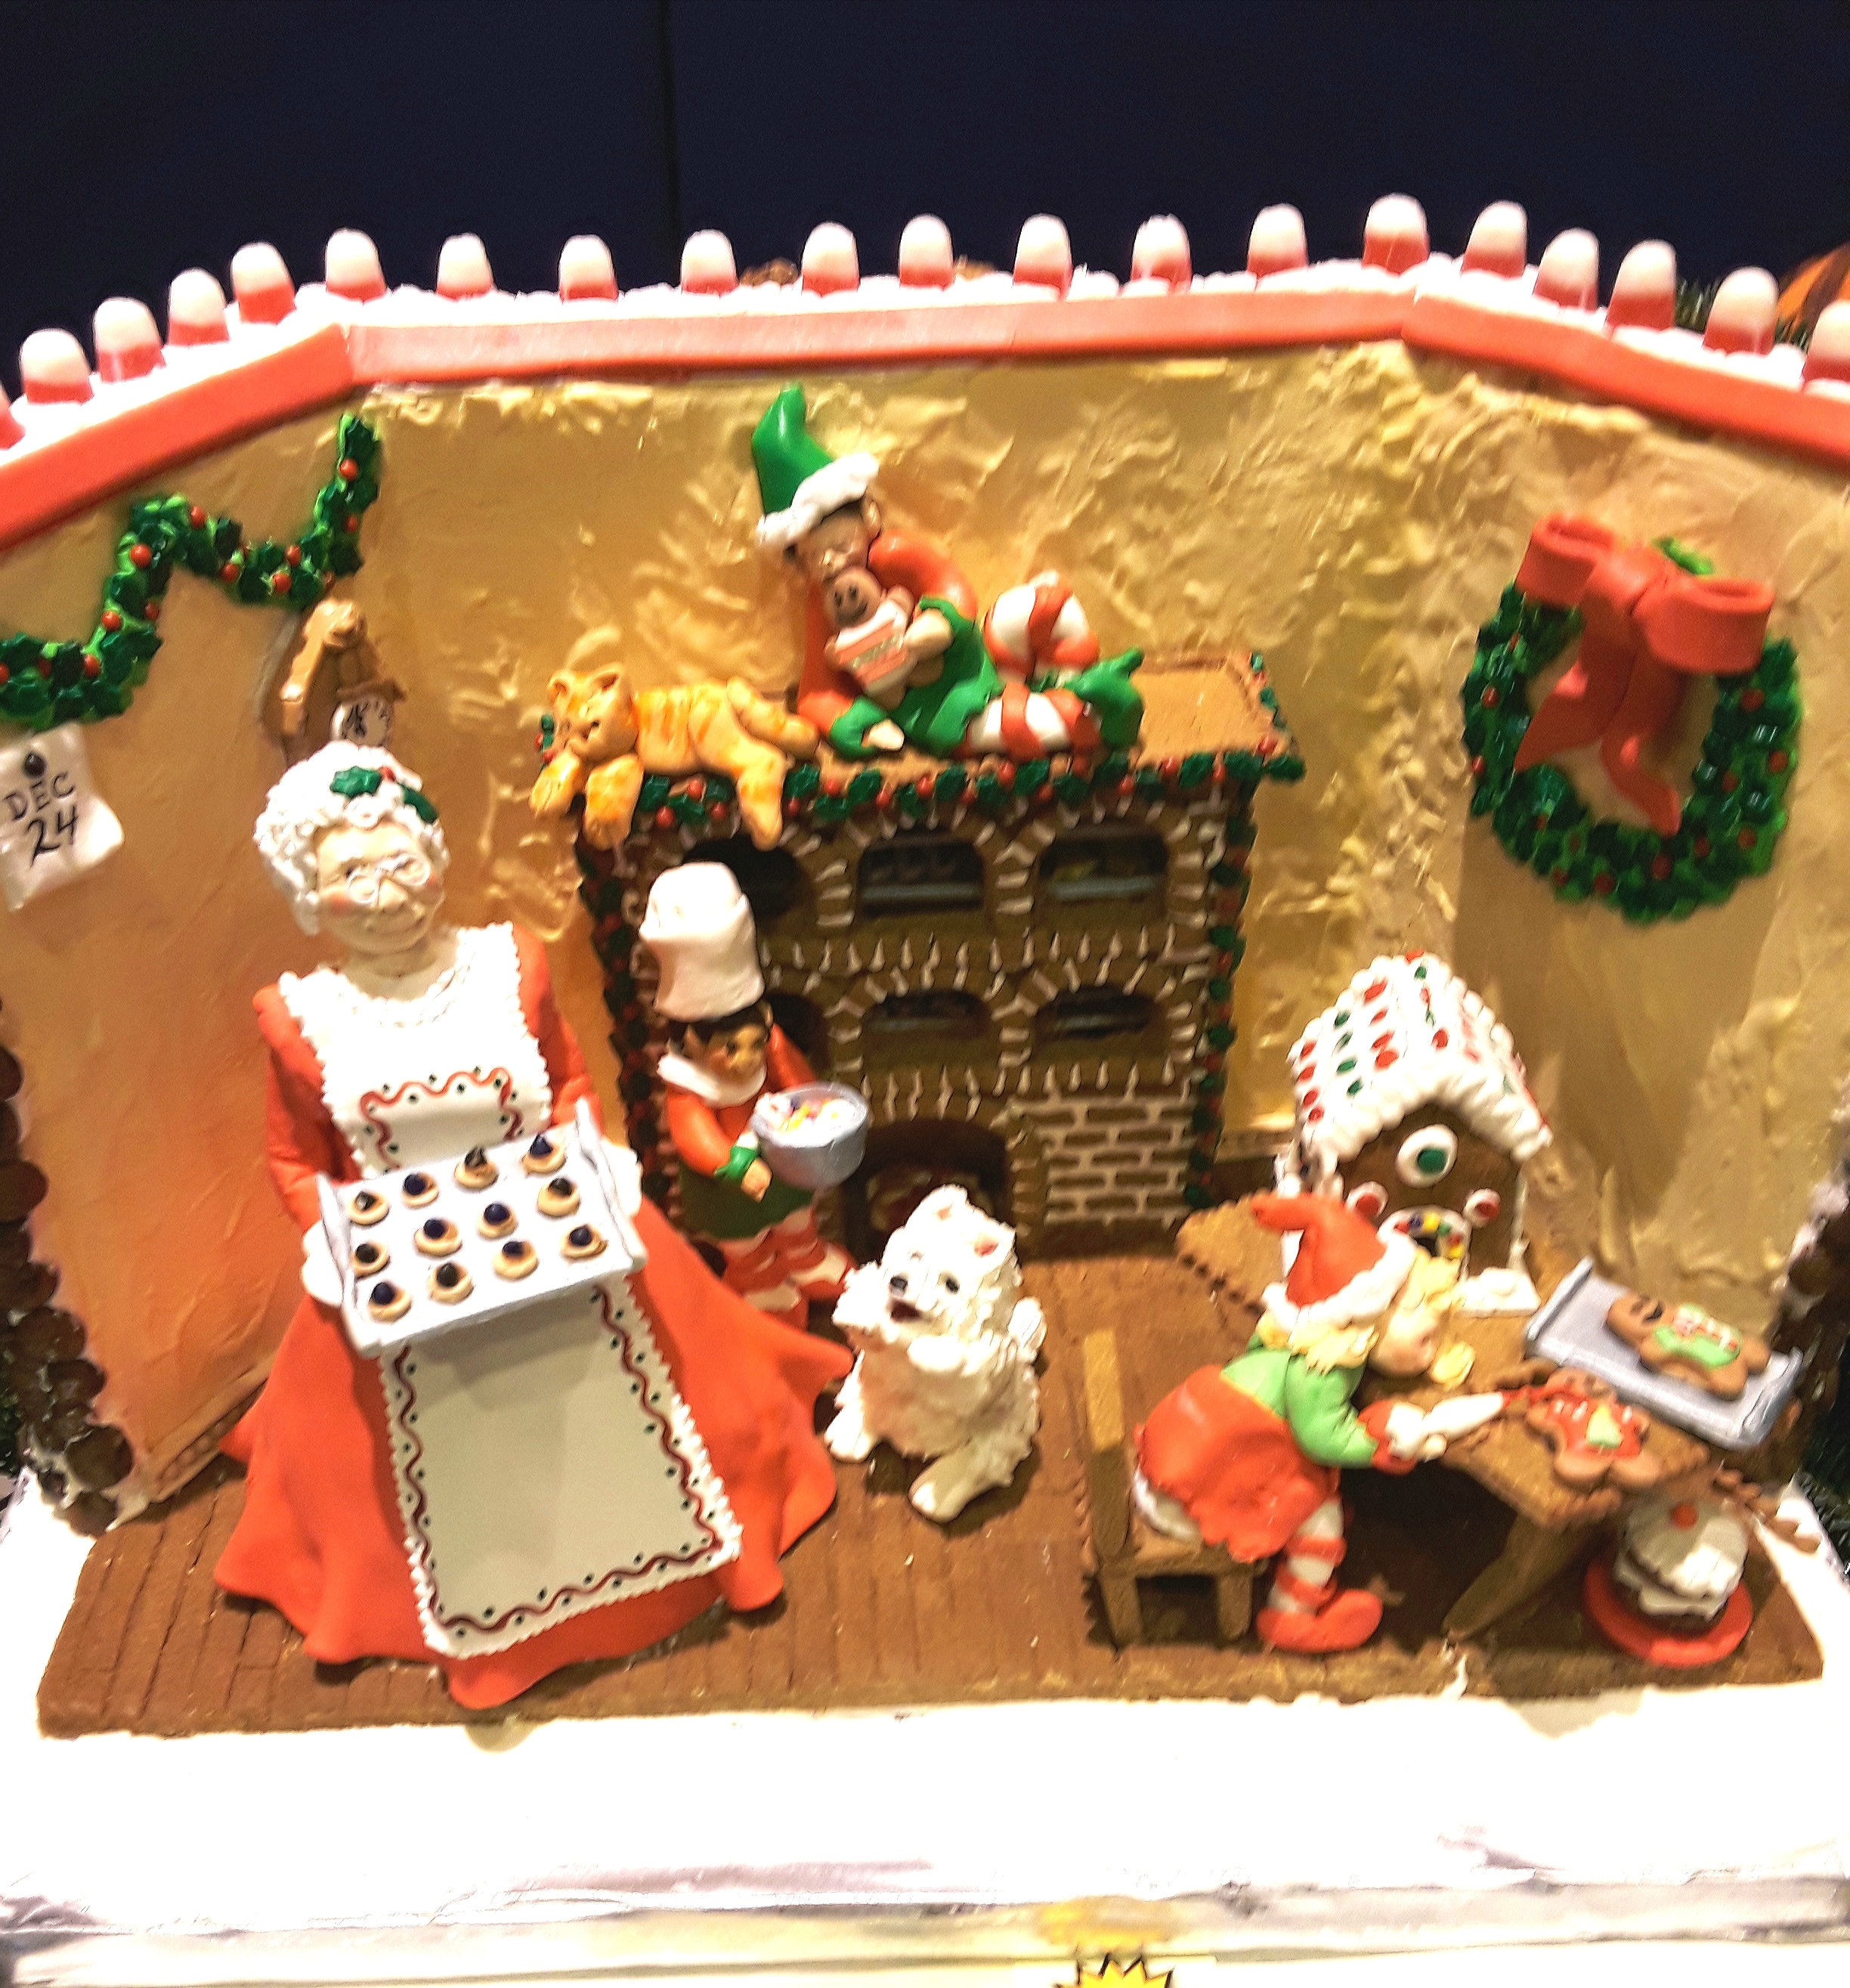 Gingerbread kitchen scene with cook and mini gingerbread house